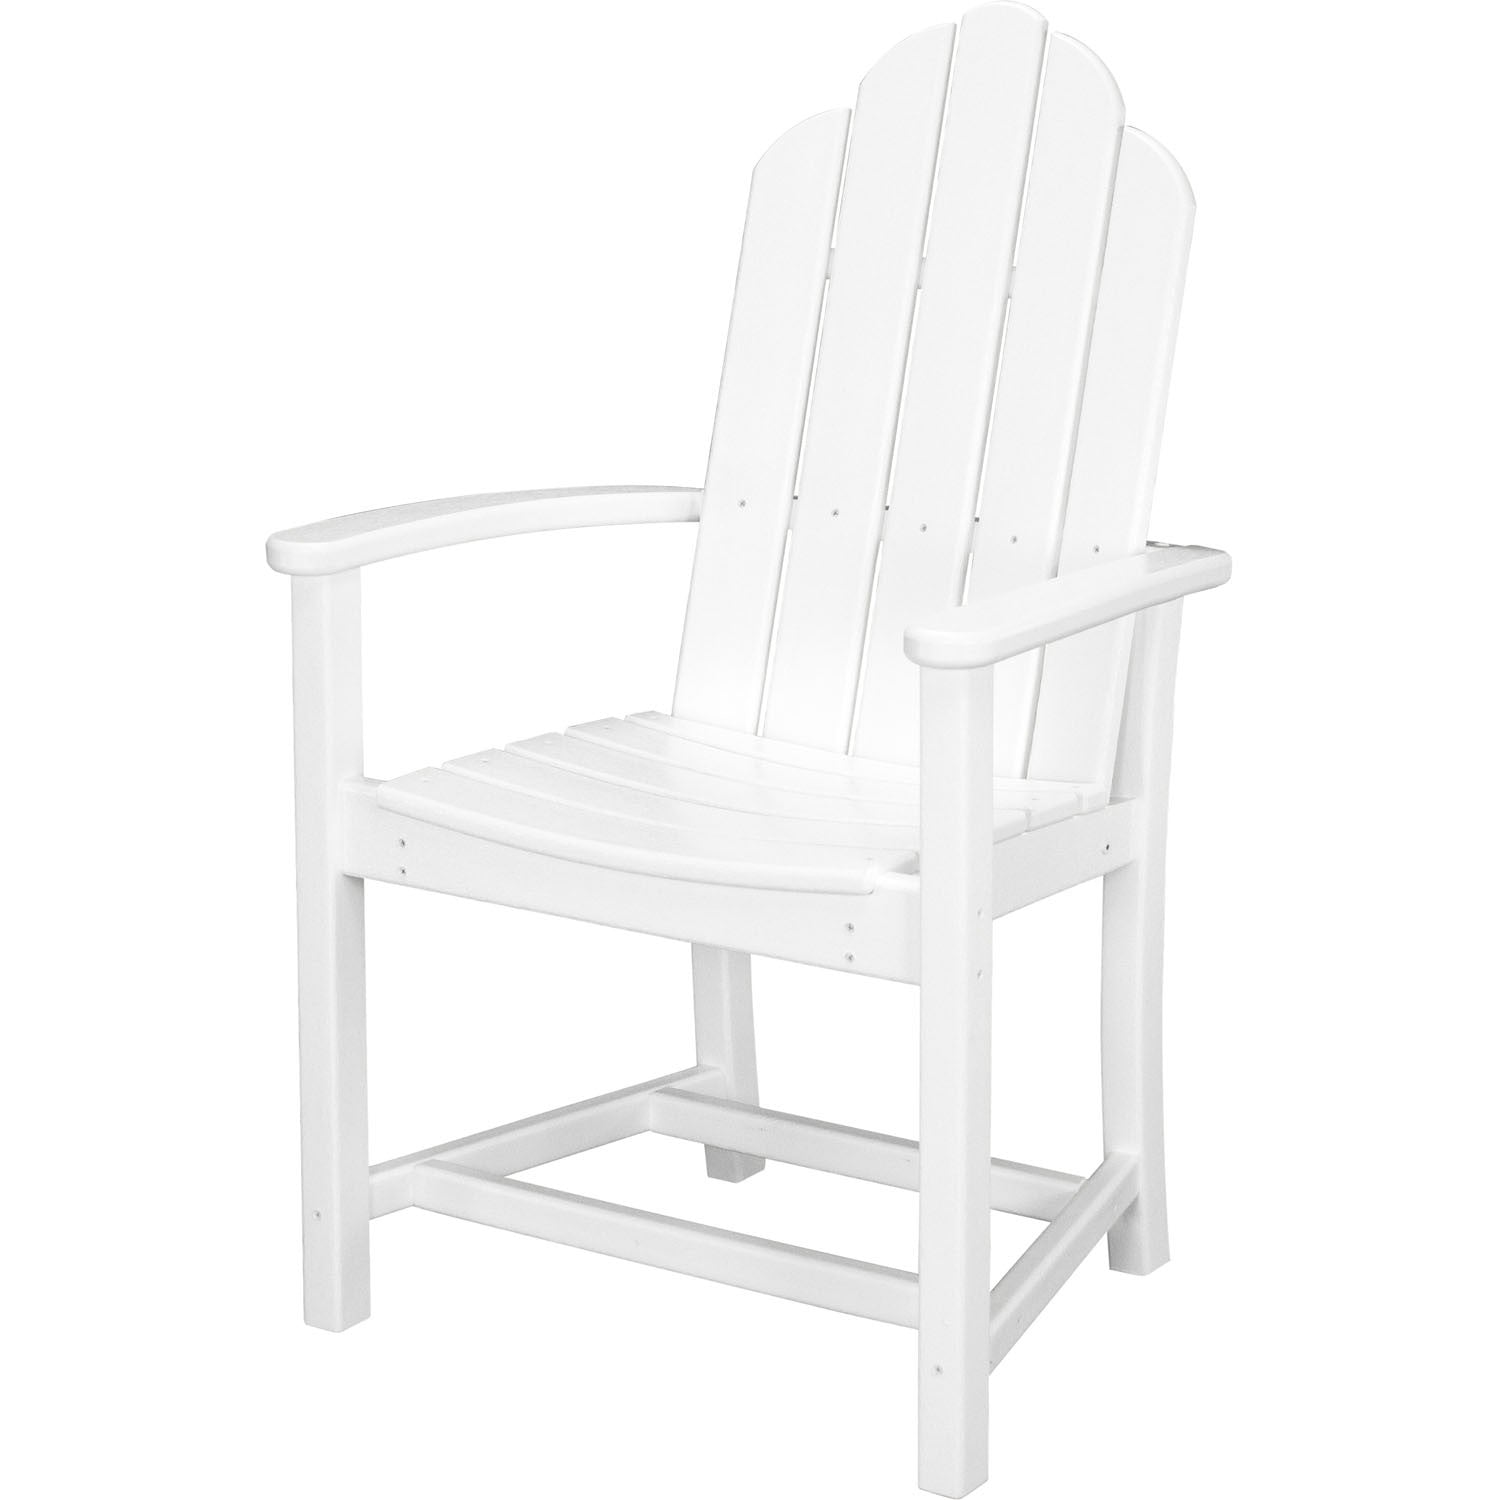 Hanover All Weather Siesta Key 5pc Dining Set: 4 Adirondack Dining Chairs,  Table   SIESTAKEY5PC   White